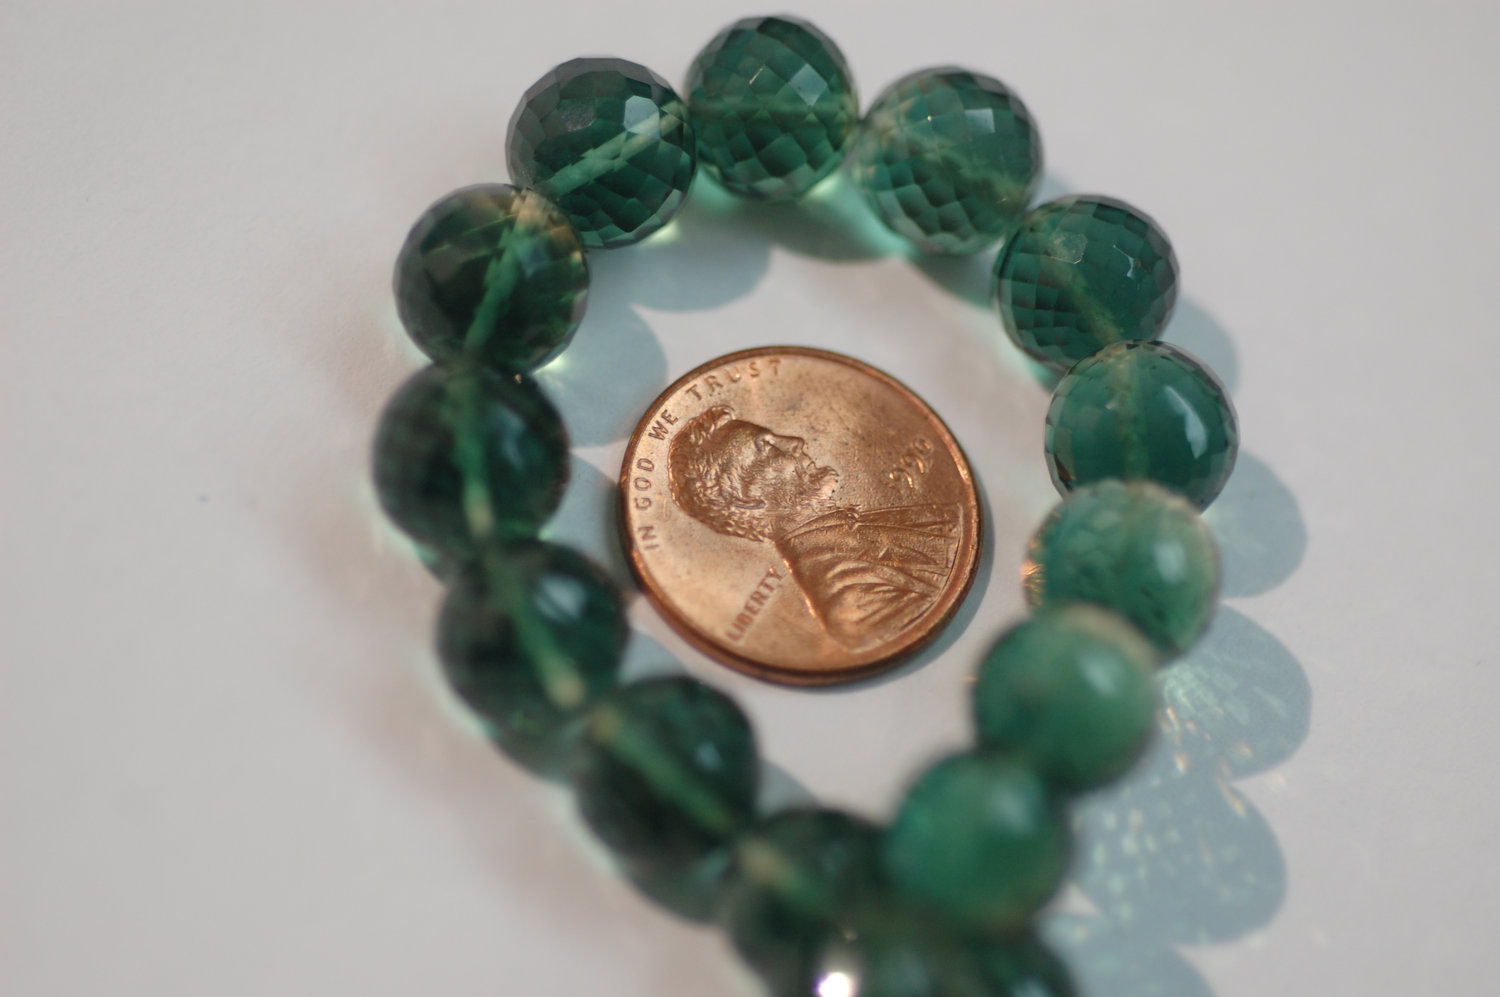 Hydro Green Quartz Round Beads Faceted